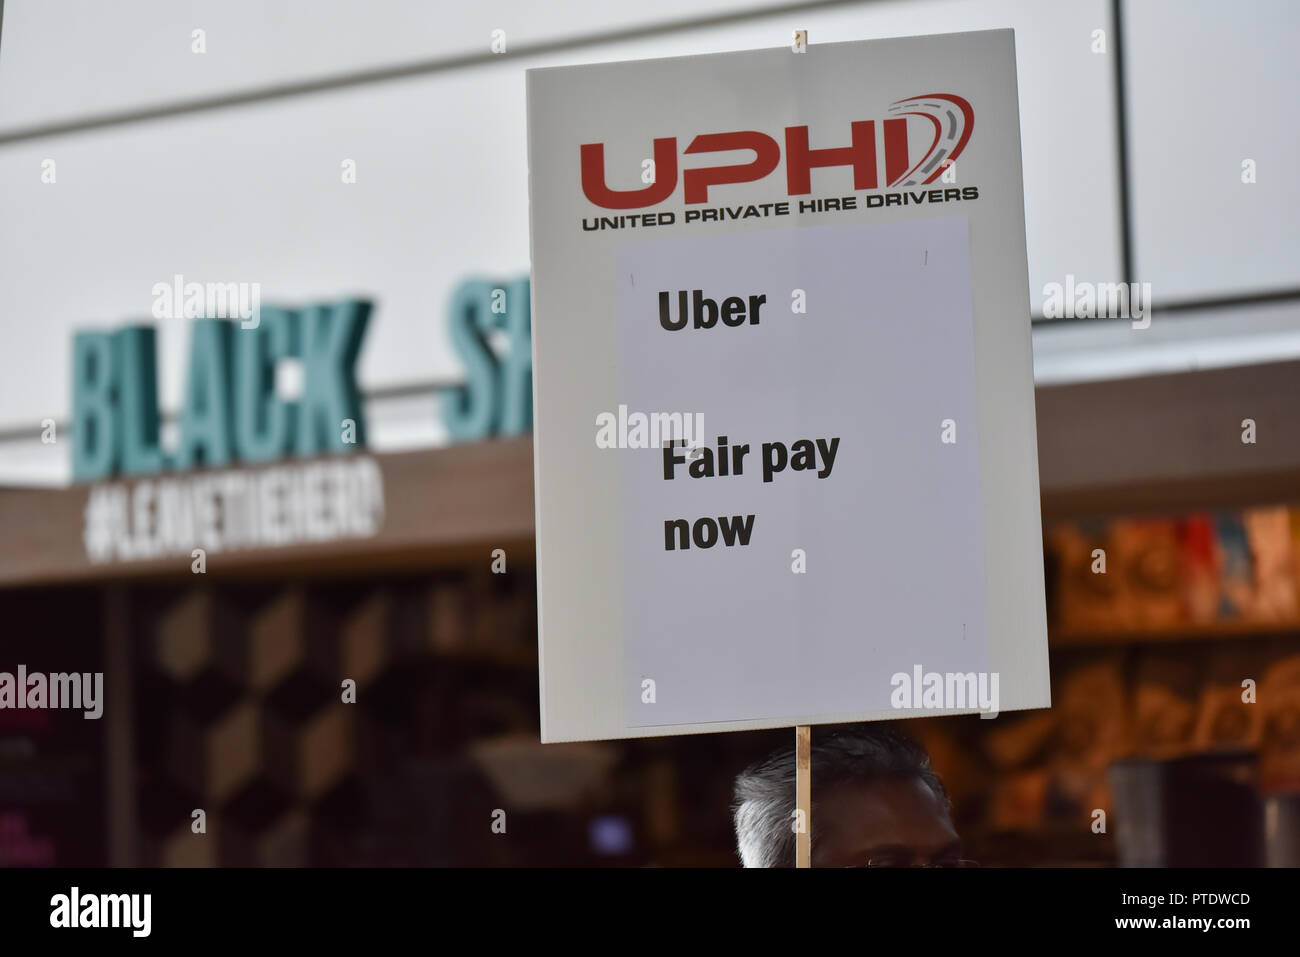 Aldgate, London, UK. 9th October 2018, Uber drivers staging a 24hr strike and protest outside the Uber HQ in Aldgate. Credit: Matthew Chattle/Alamy Live News Stock Photo